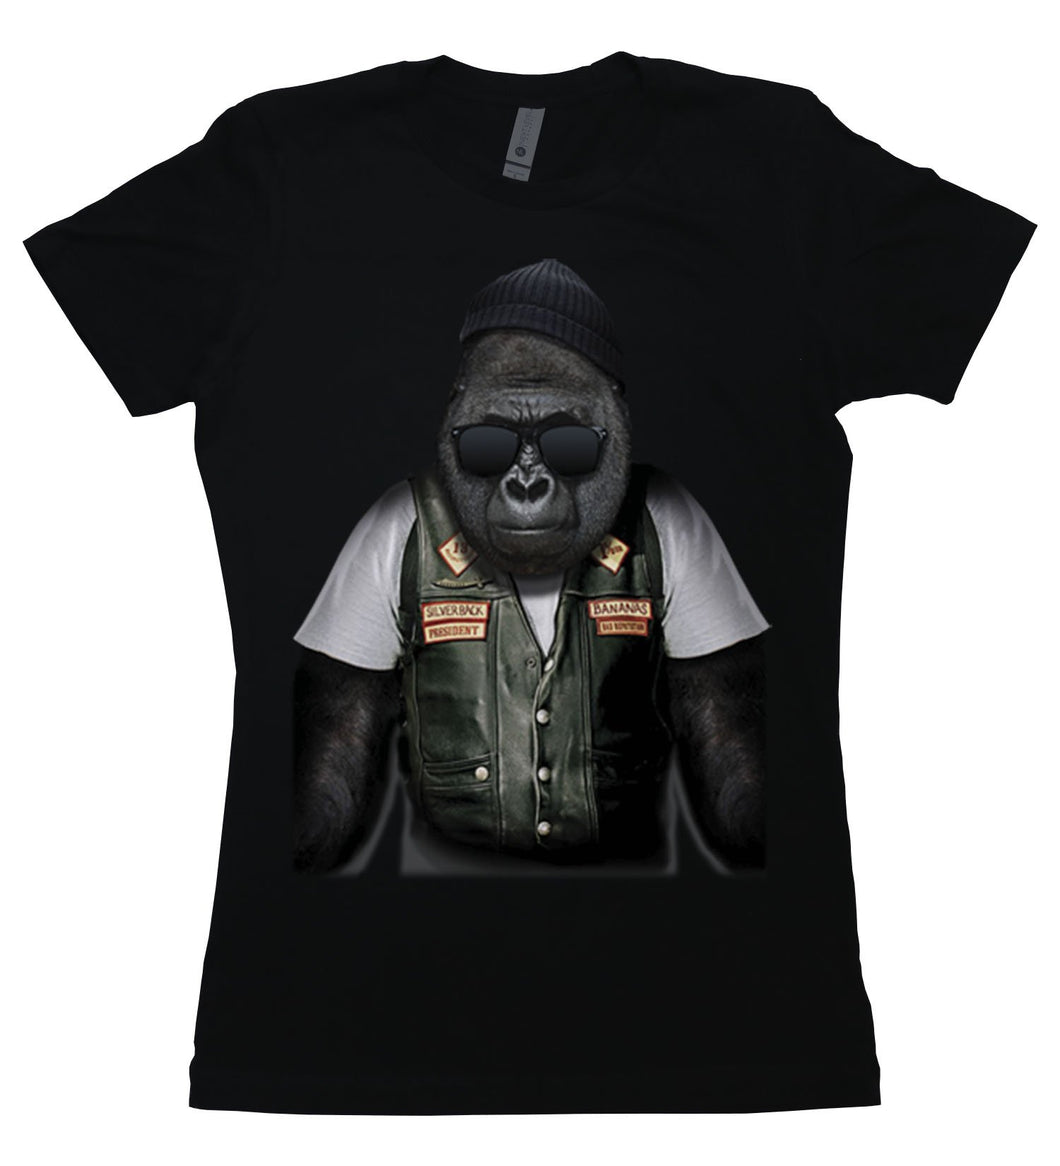 A gorilla dressed as a biker on a t-shirt